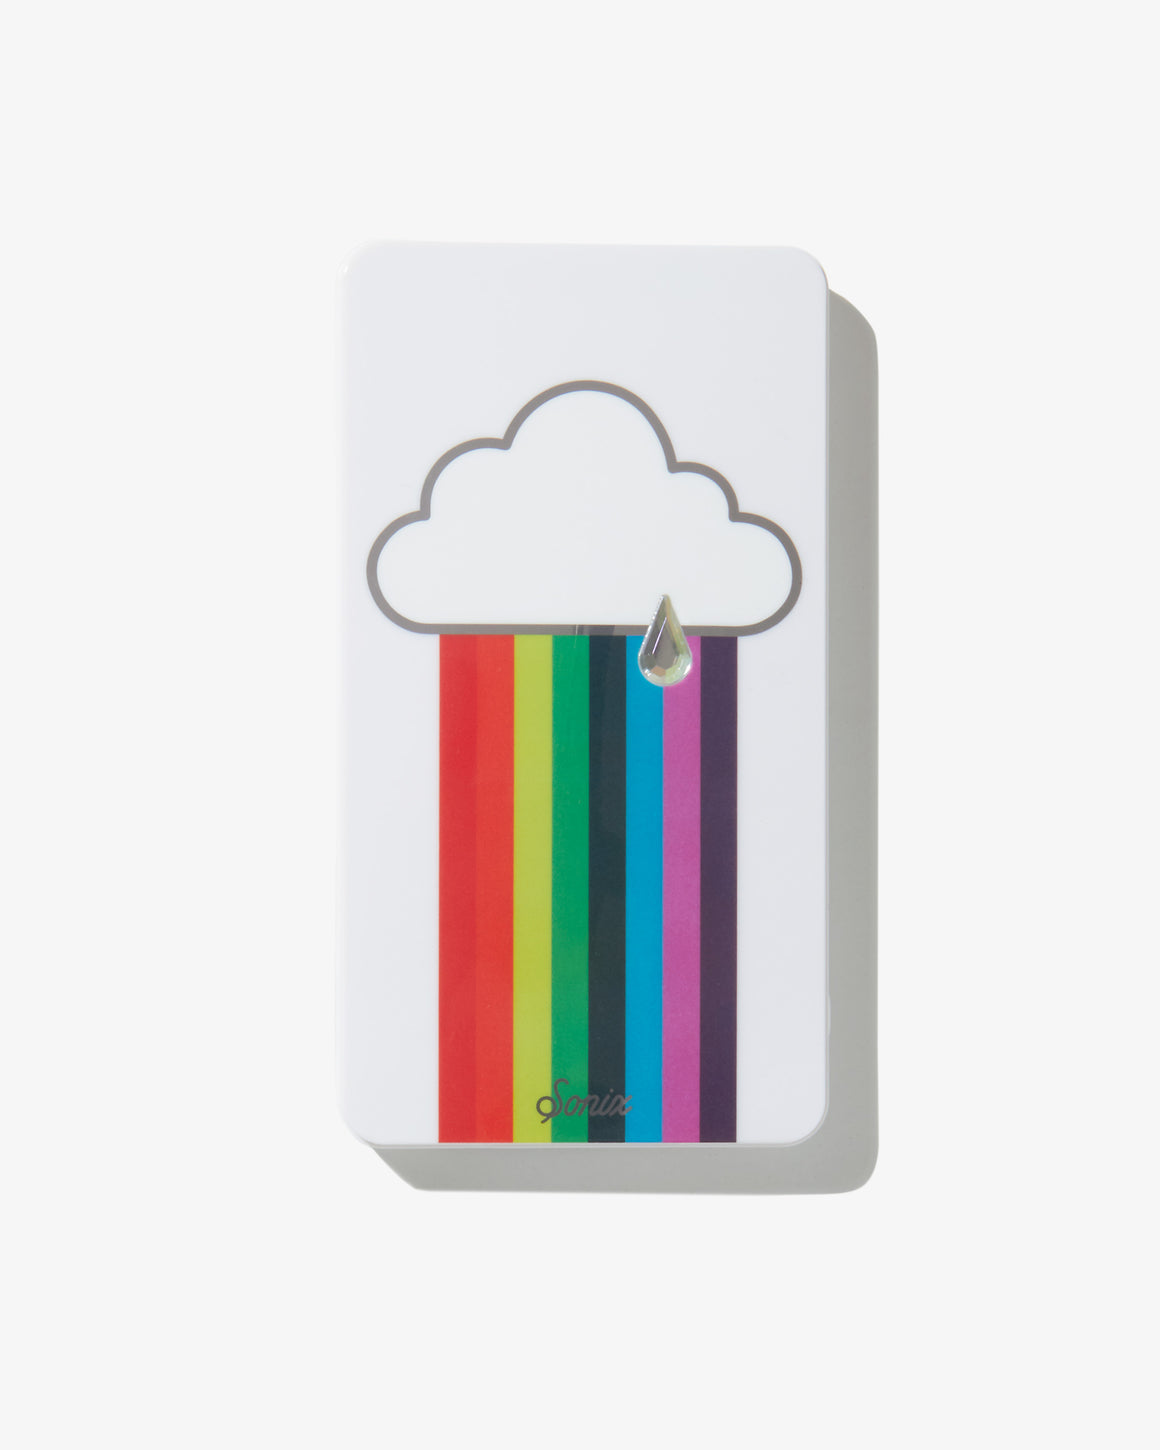 Cloudy, Portable Charger (5K)